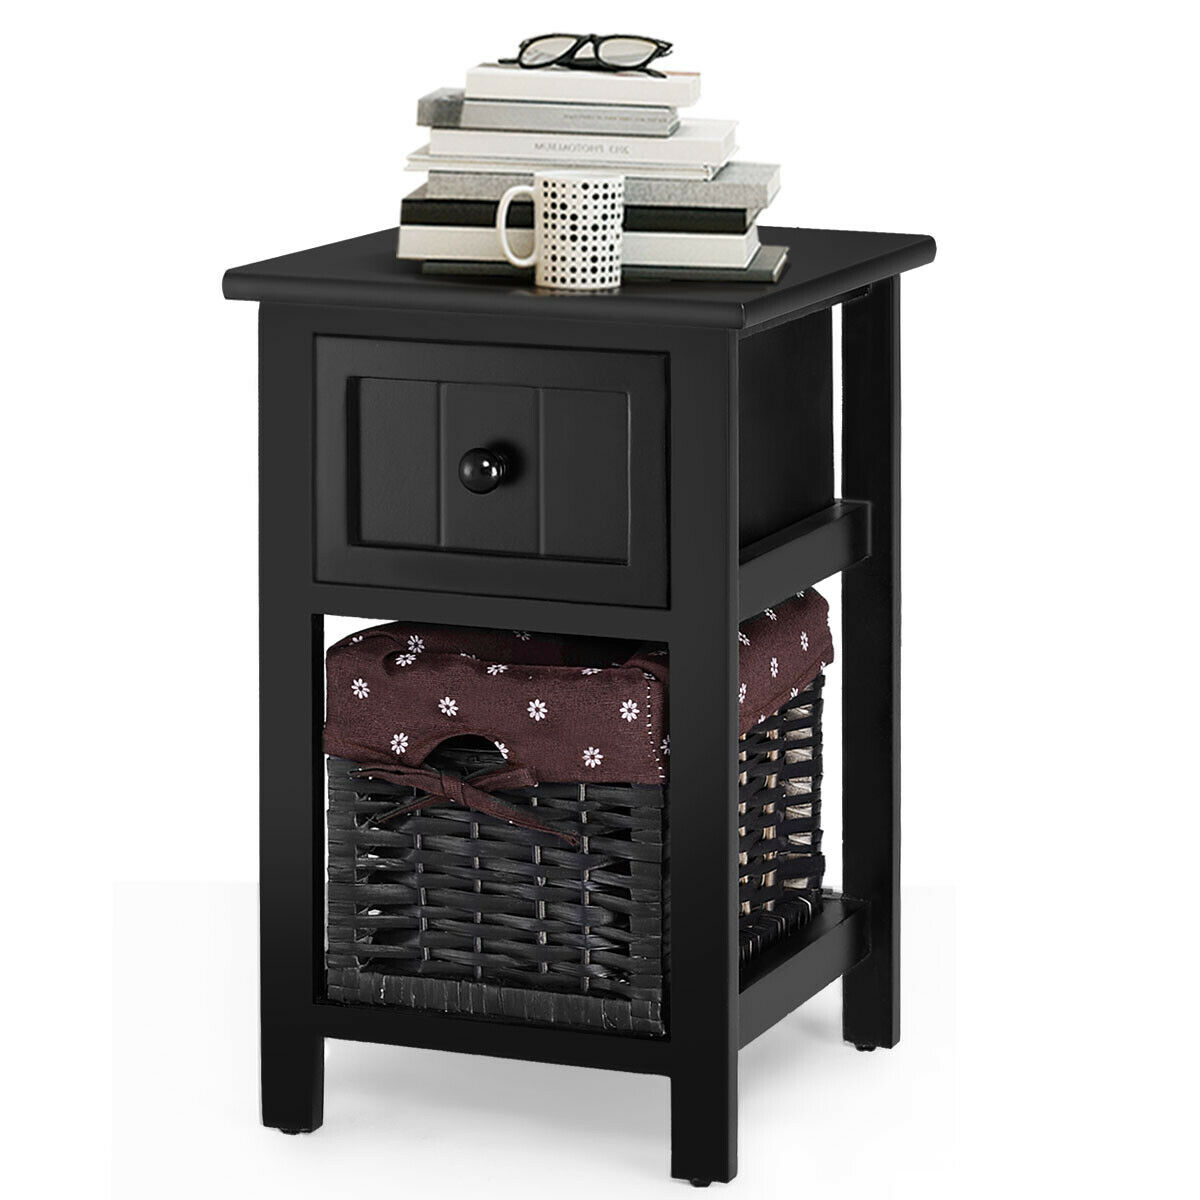 Black End Tables With Drawer Gymax 2 Tier Mini Nightstand 1 Drawer Bedside End Table Organizer Wood W Basket Black